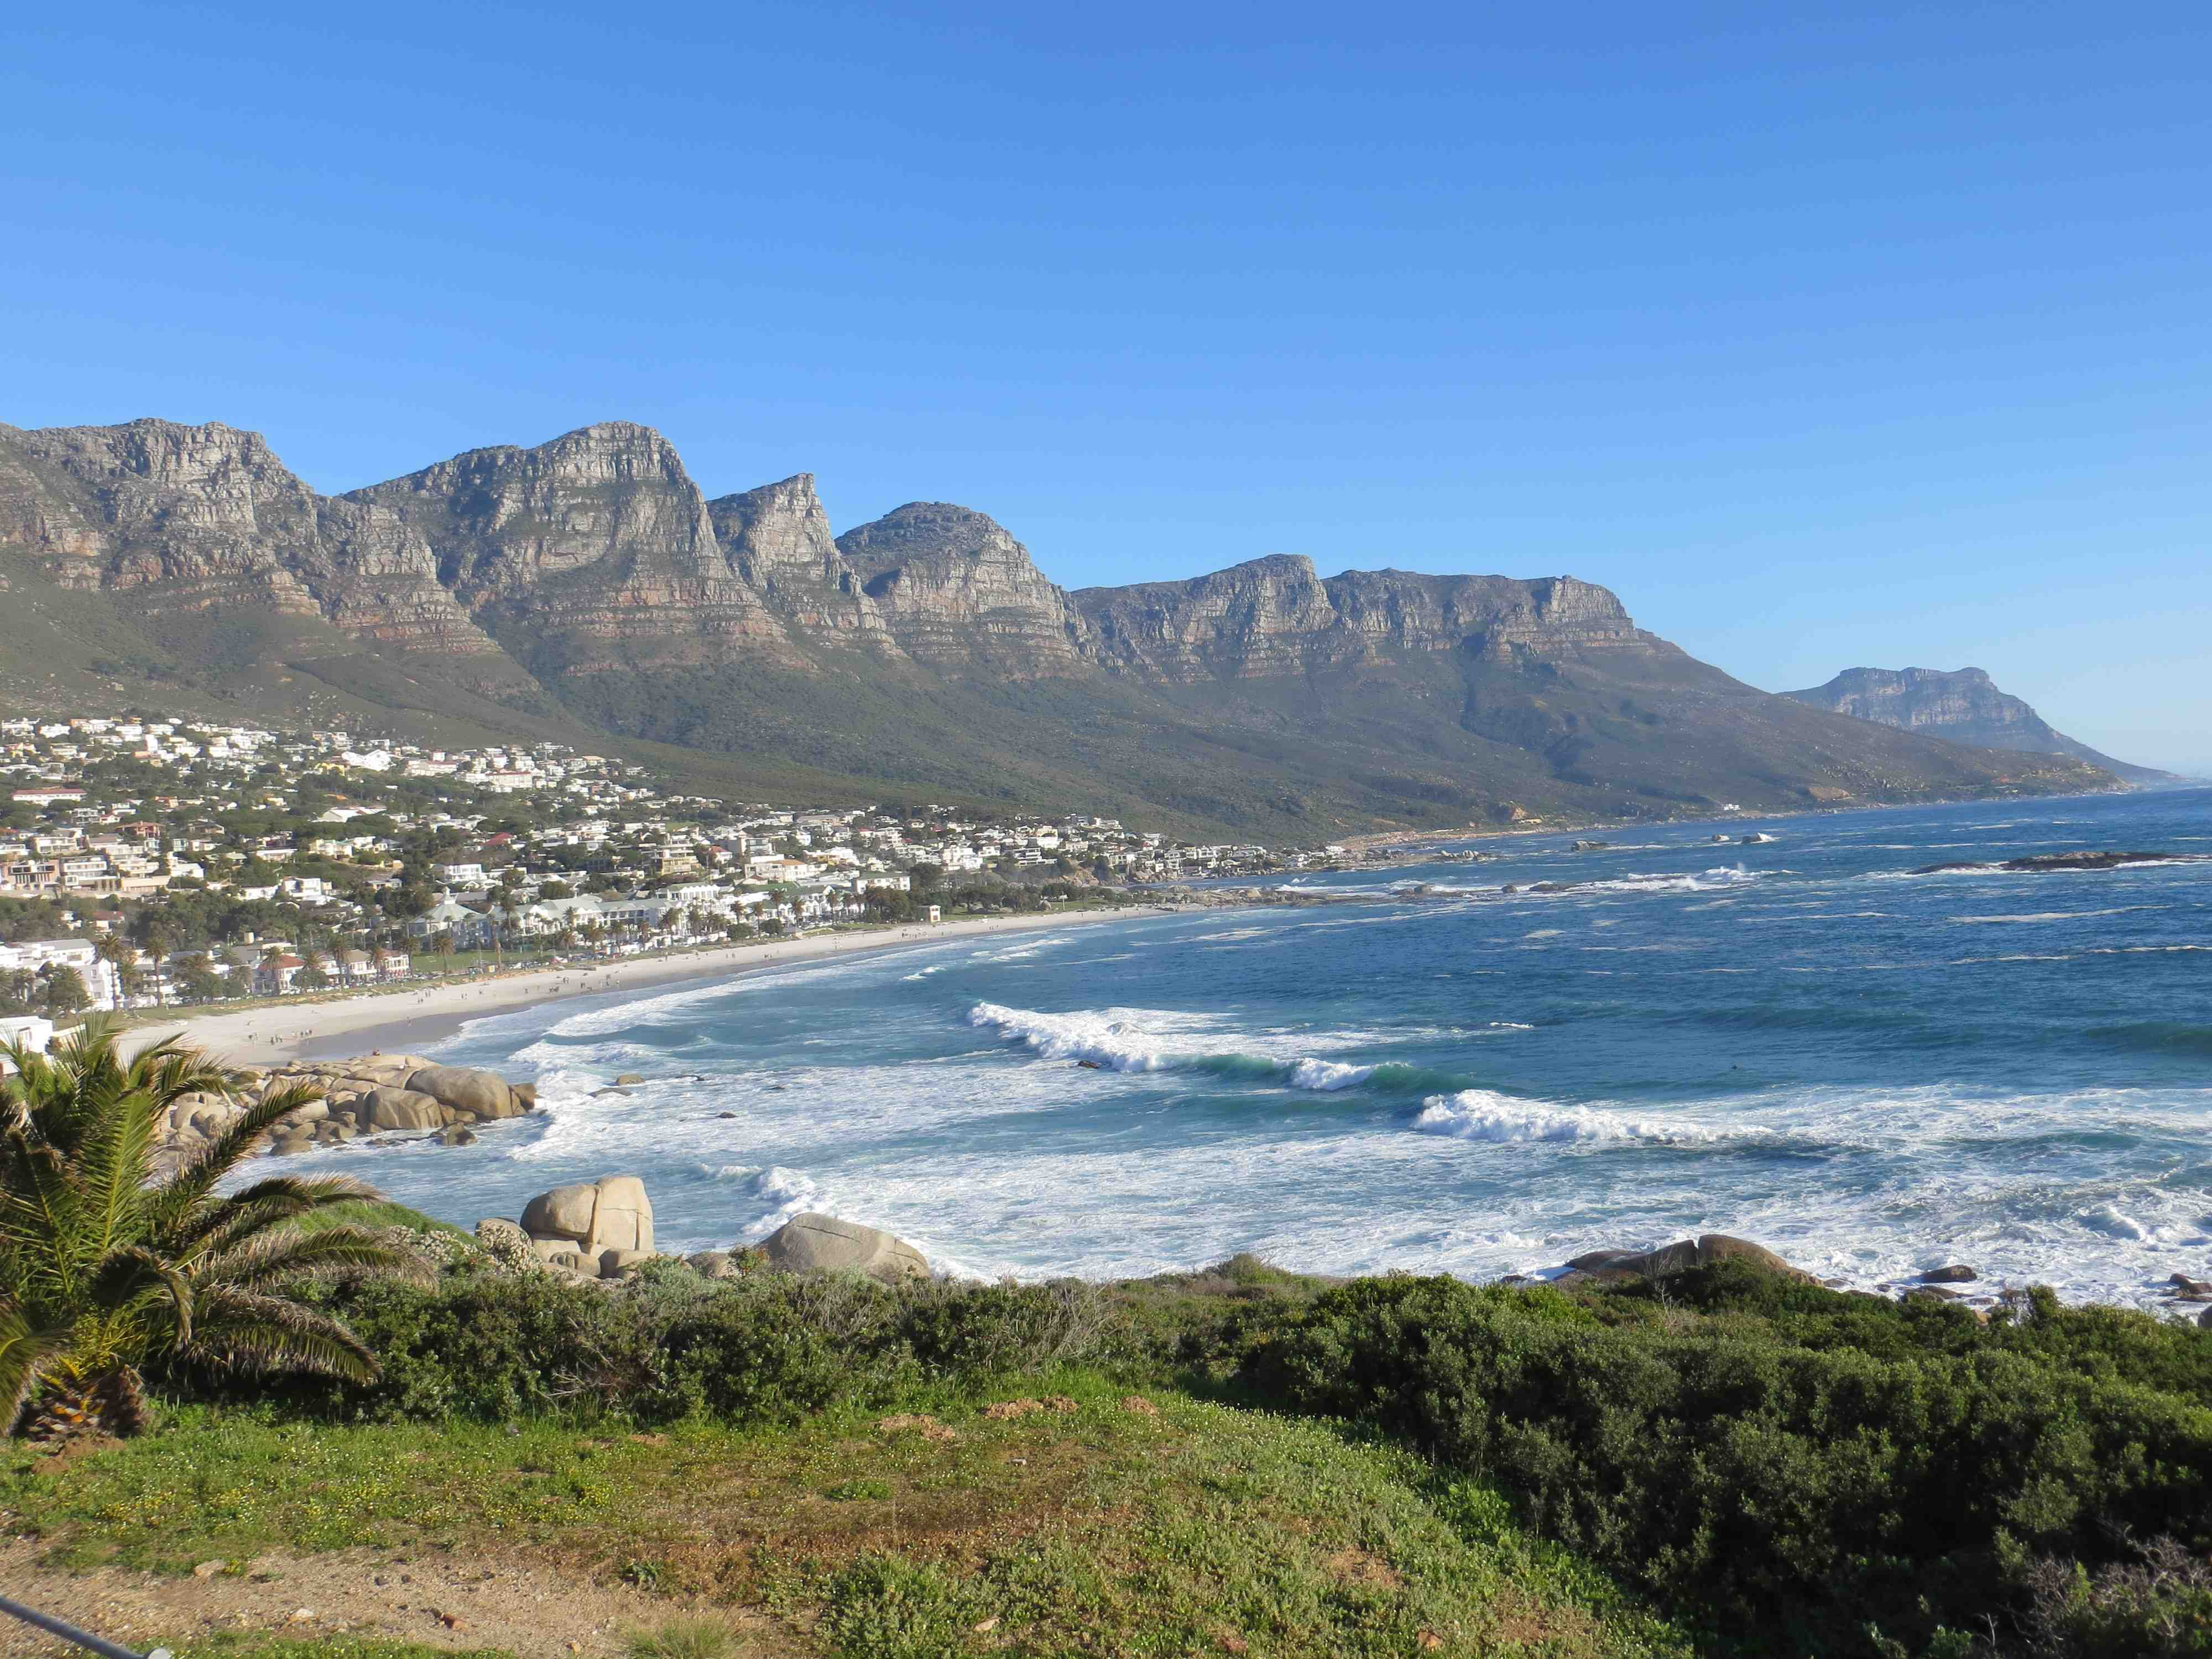 Camps Bay Beach About 2 Km From Me